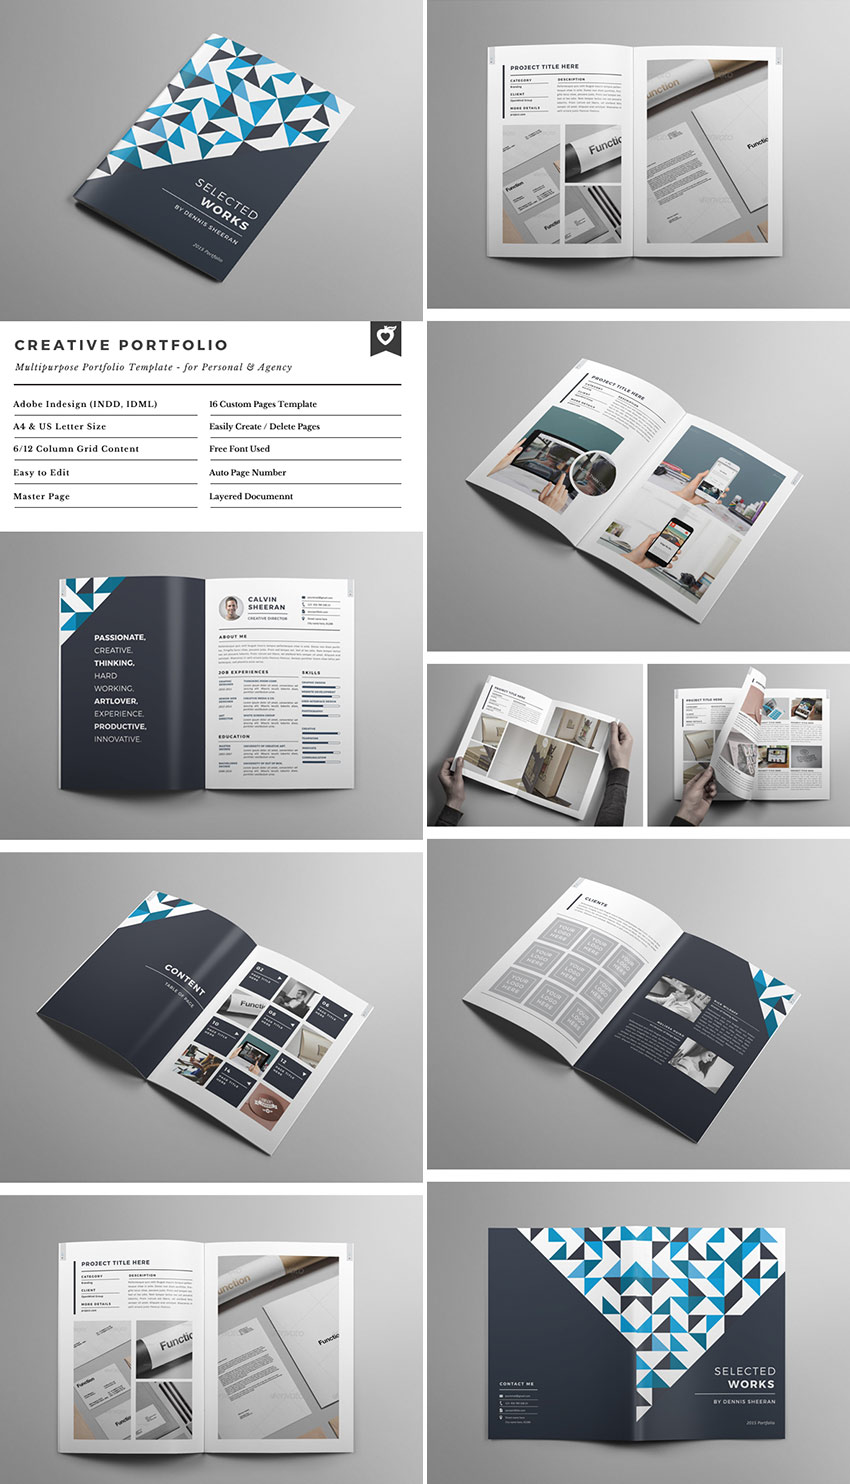 20 best indesign brochure templates for creative business marketing. Black Bedroom Furniture Sets. Home Design Ideas